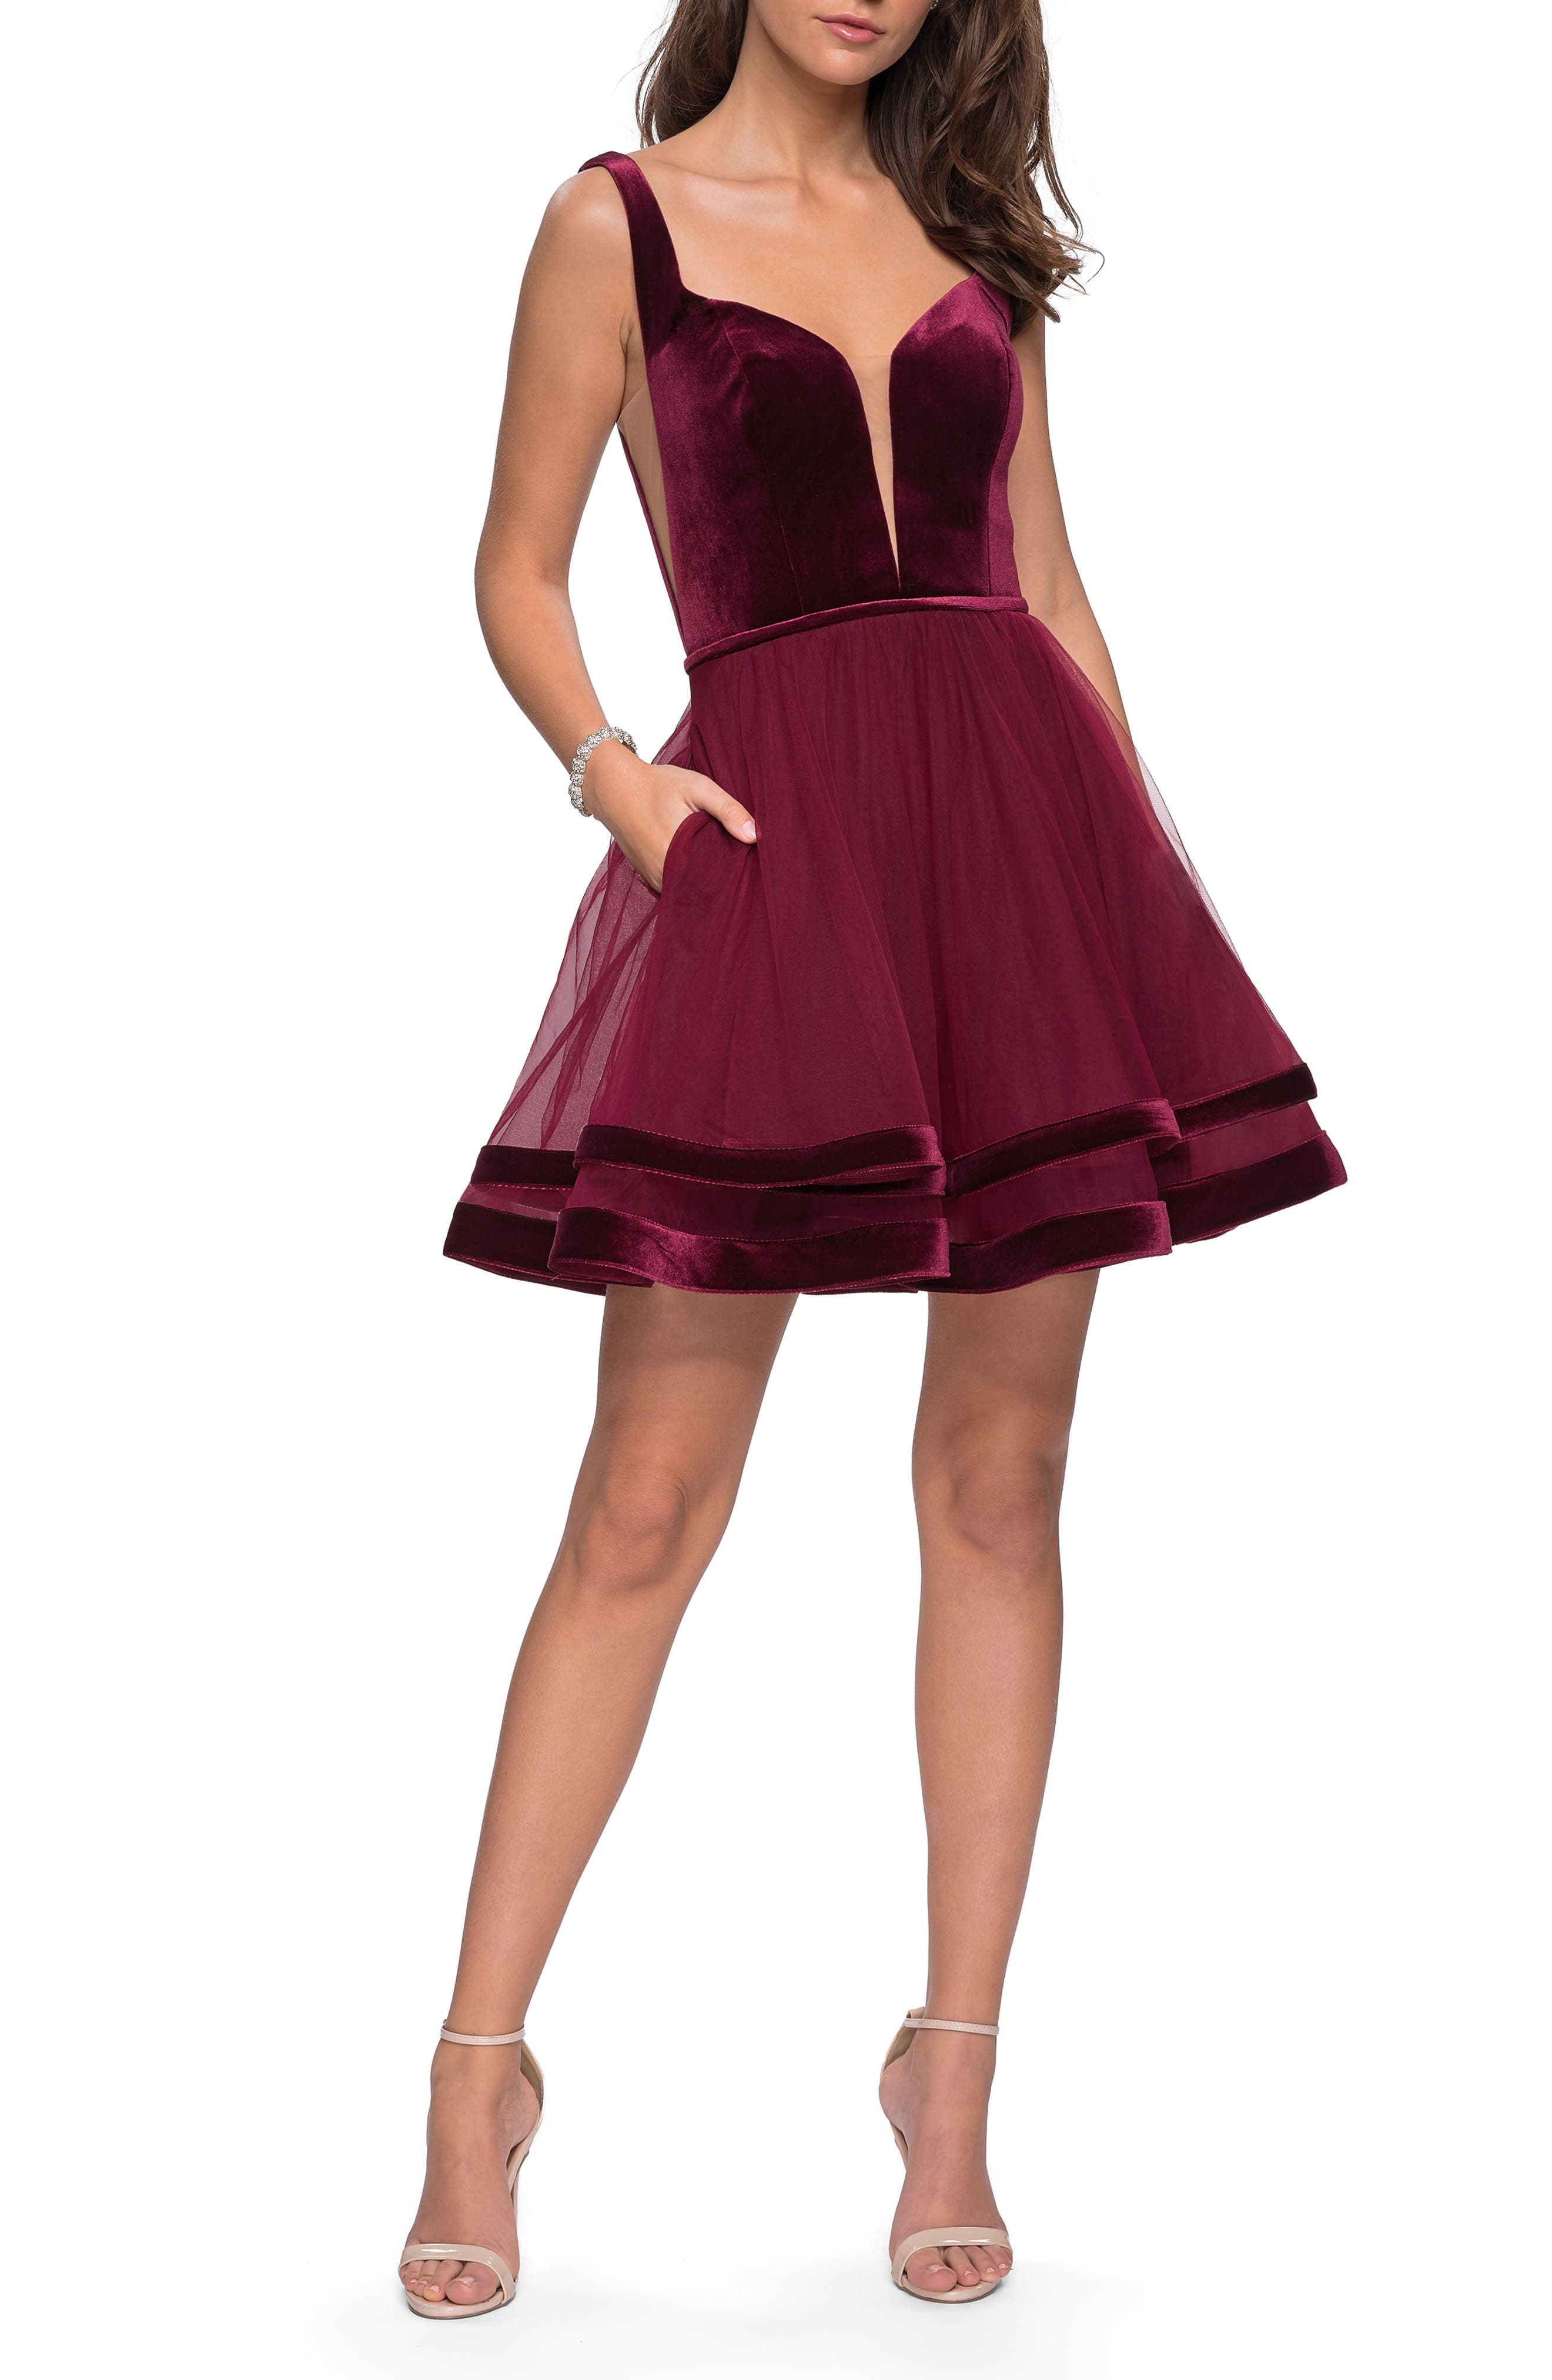 La Femme Velvet & Tulle Party Dress, Burgundy